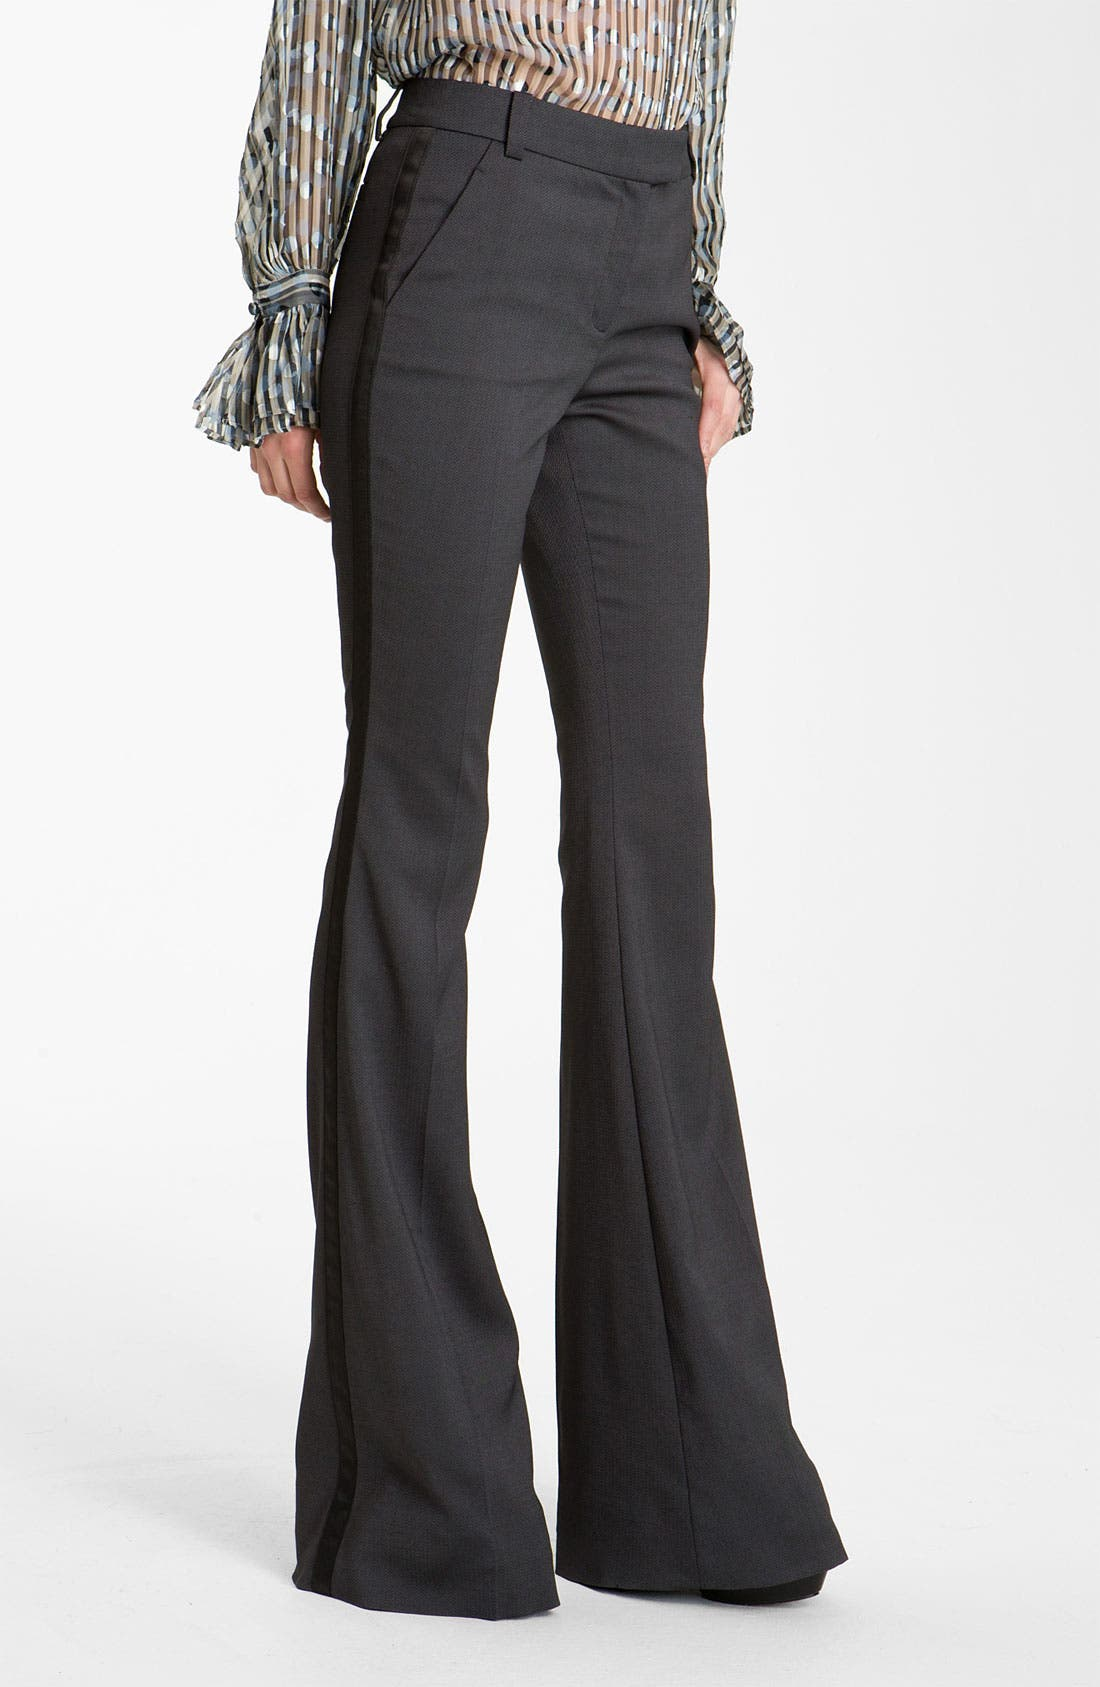 Alternate Image 1 Selected - Rachel Zoe 'Hutton' Flare Leg Pants (Long)